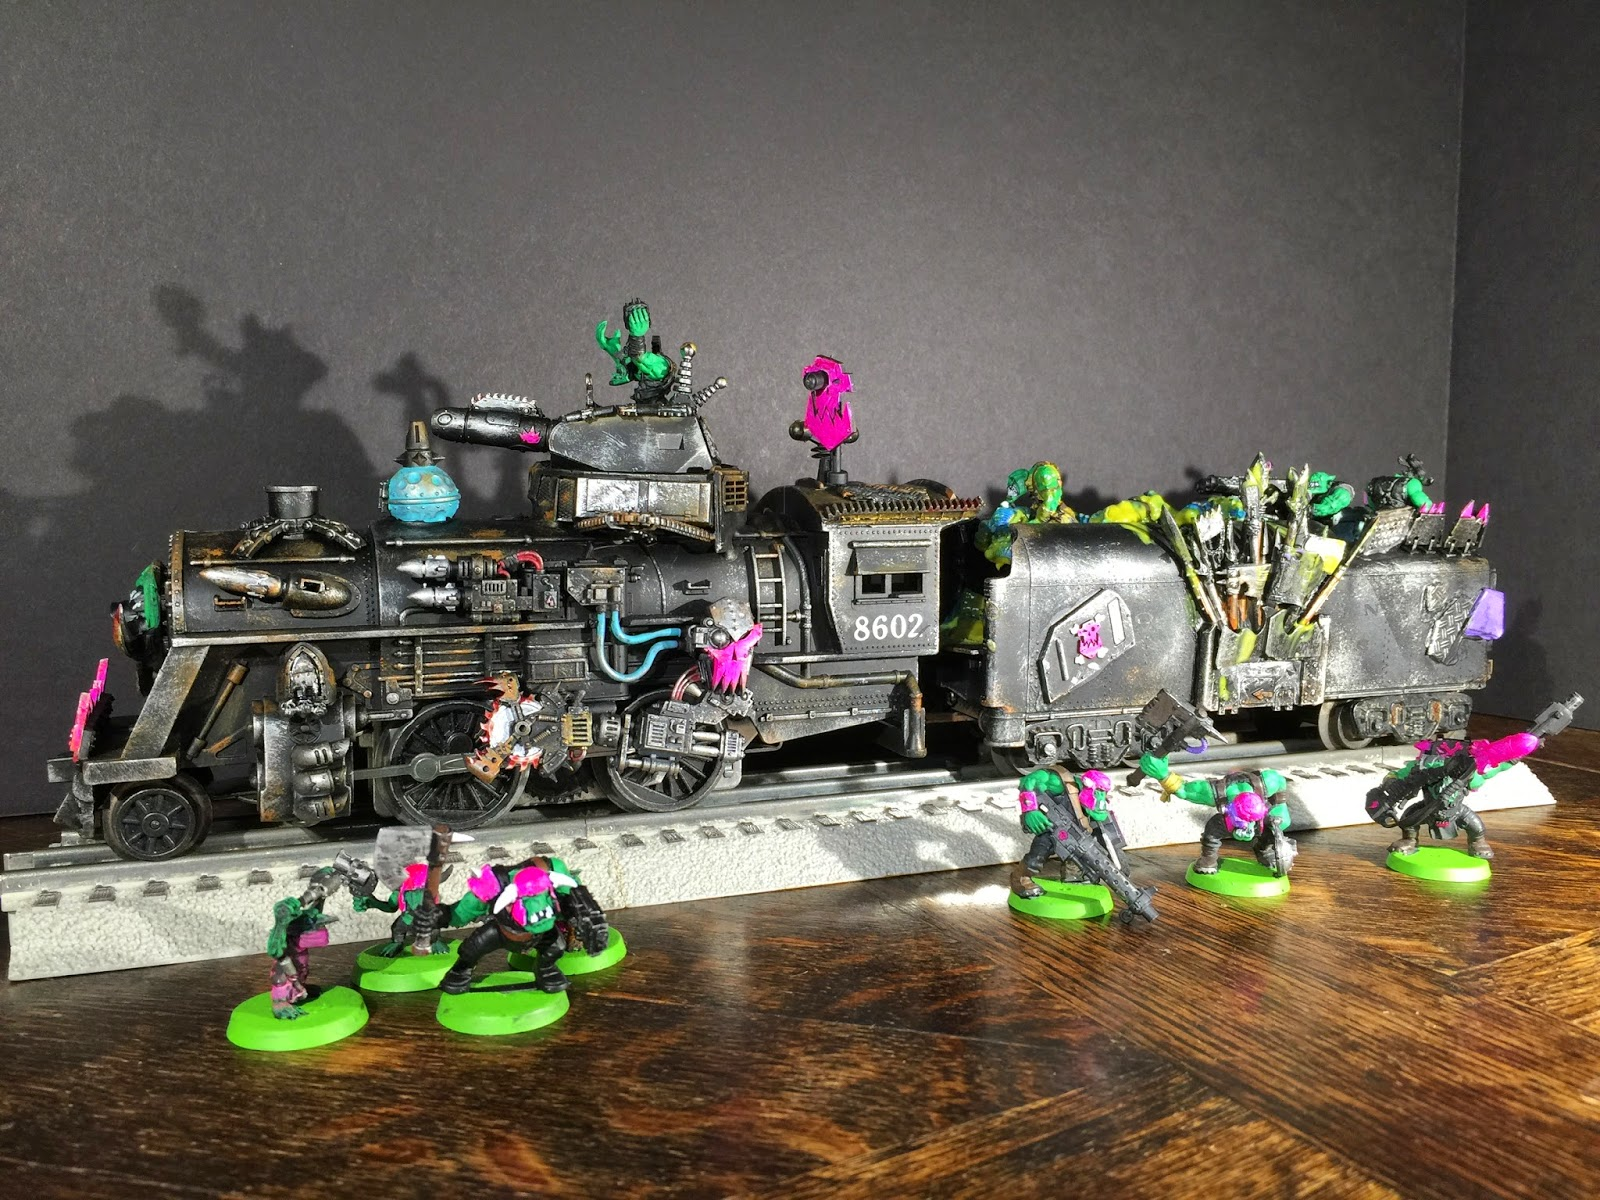 Ork Train; Pink Orks Train; Dakka Chugga; Ork Looted Wagon; Tyranid Fuel; Battle Gaming One